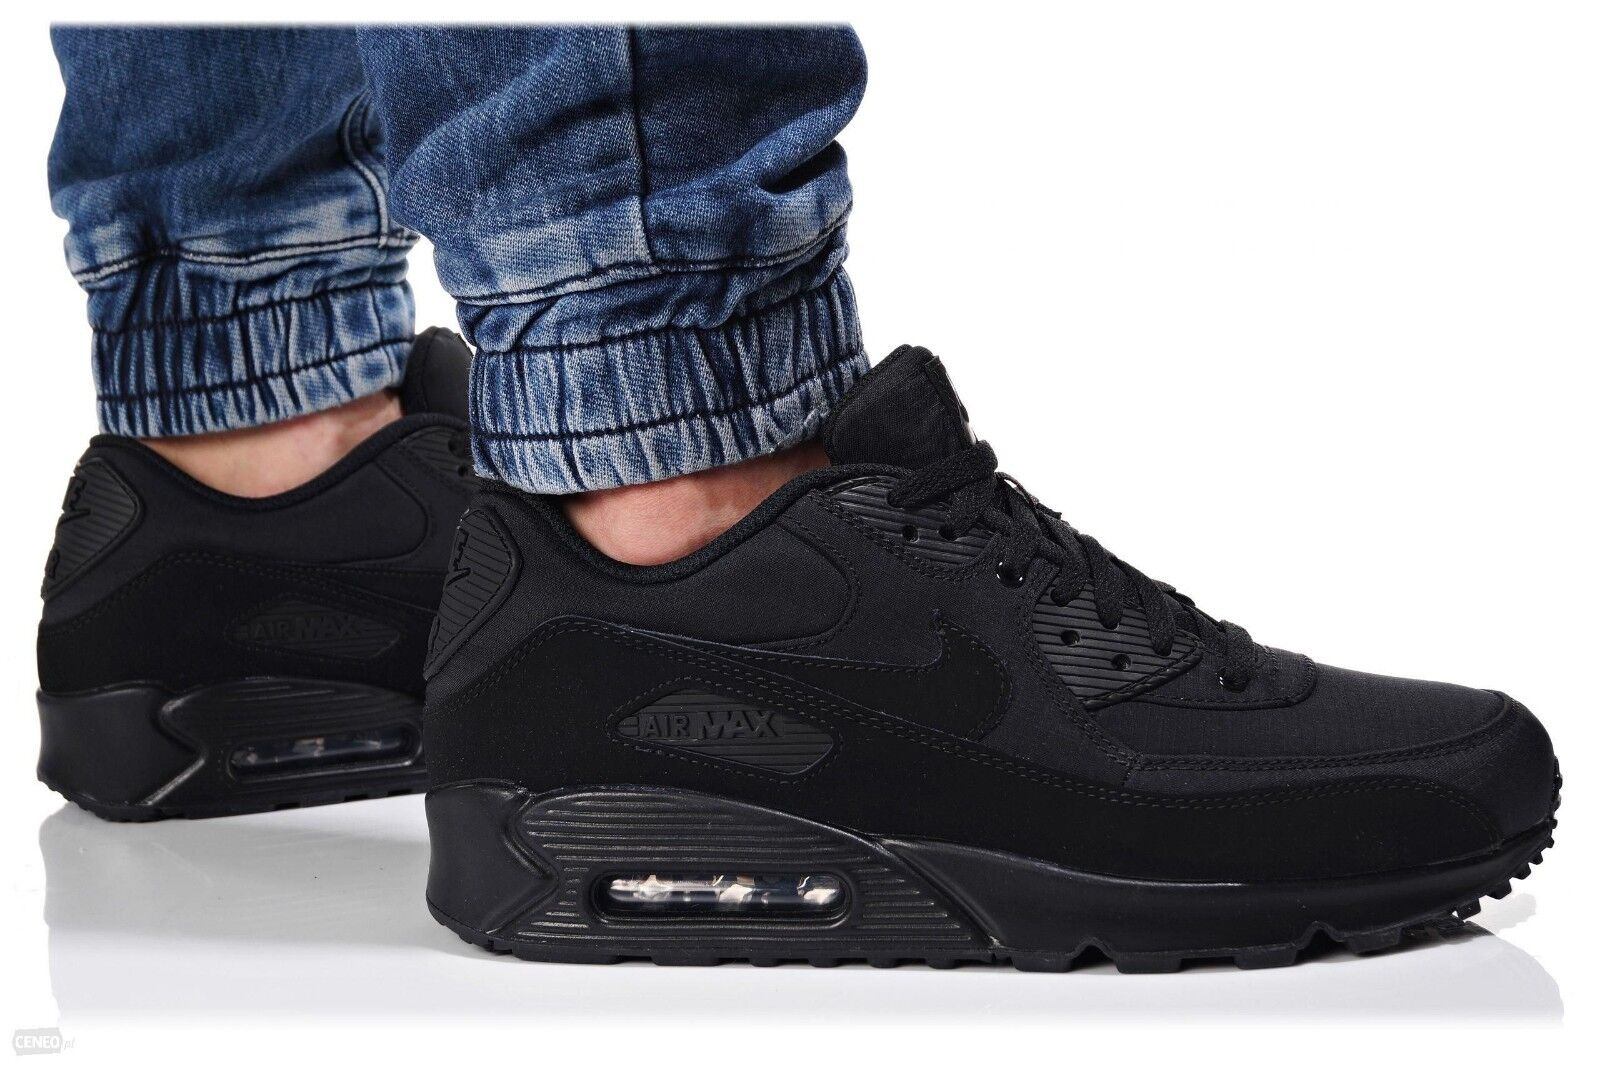 Nike Air Max 90 Essential Triple Black Nylon Suede 13 Running Shoes 537384 072